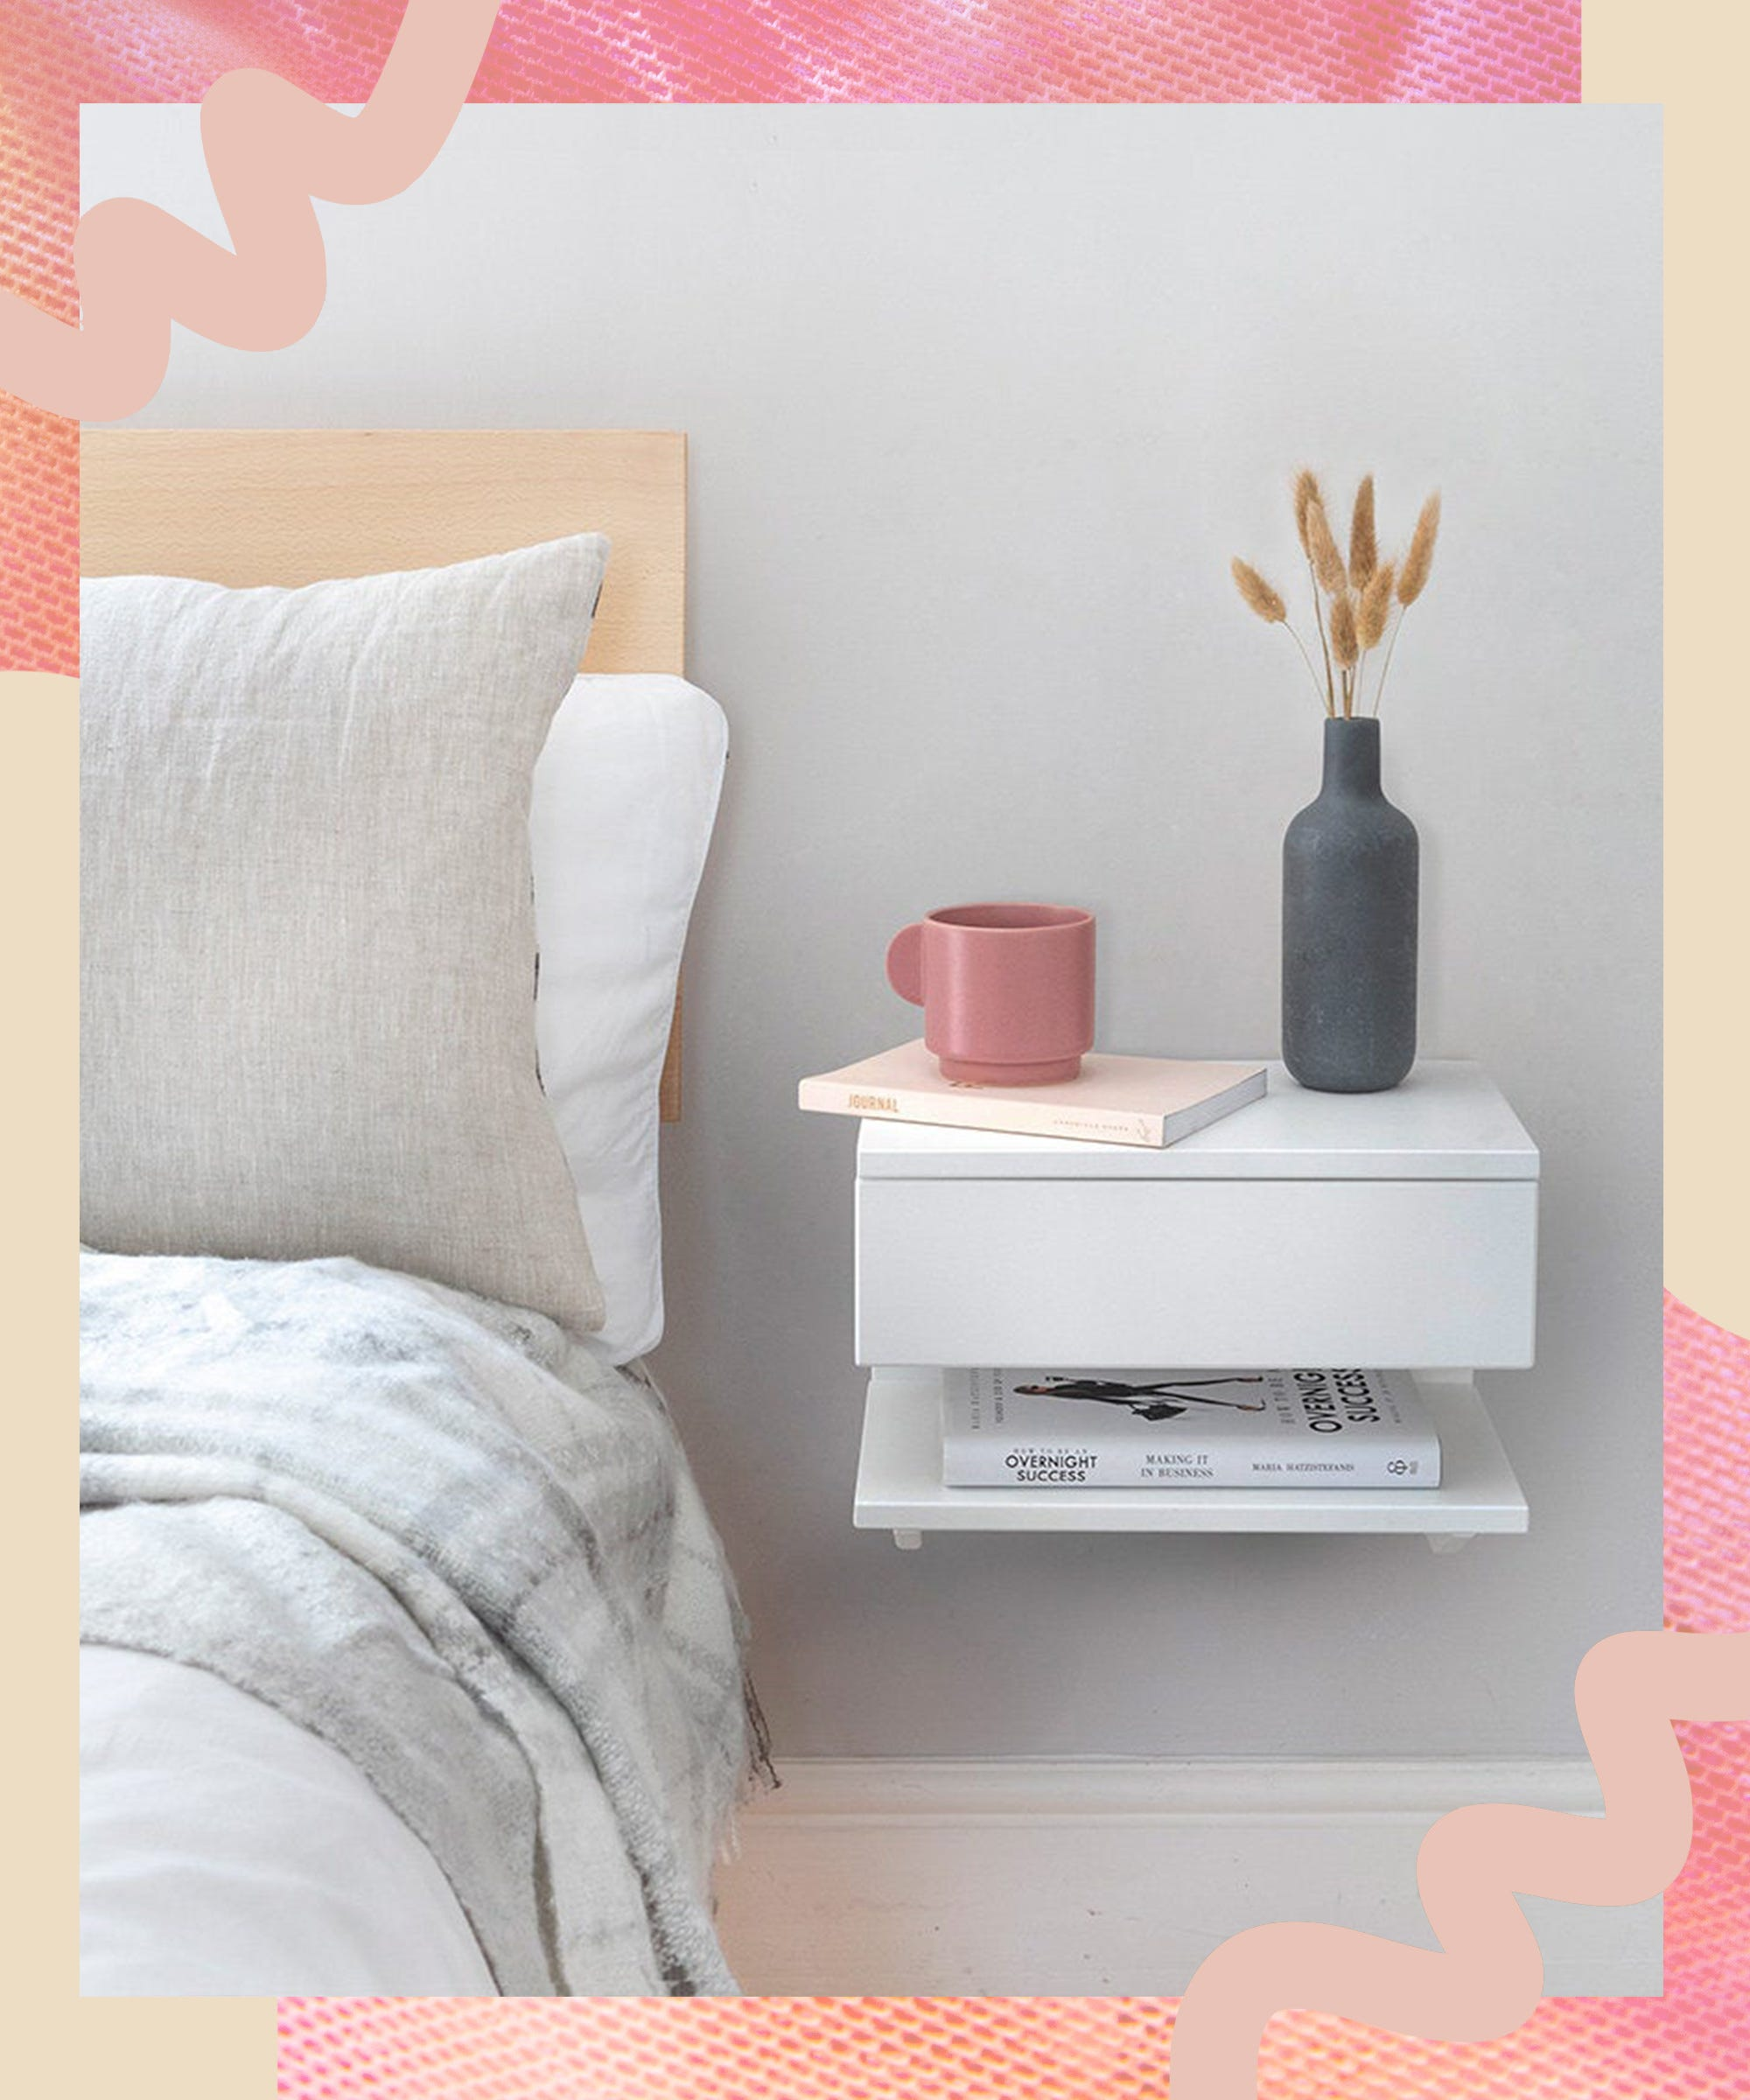 Cheap Small Space Furniture & Room Ideas Under $150